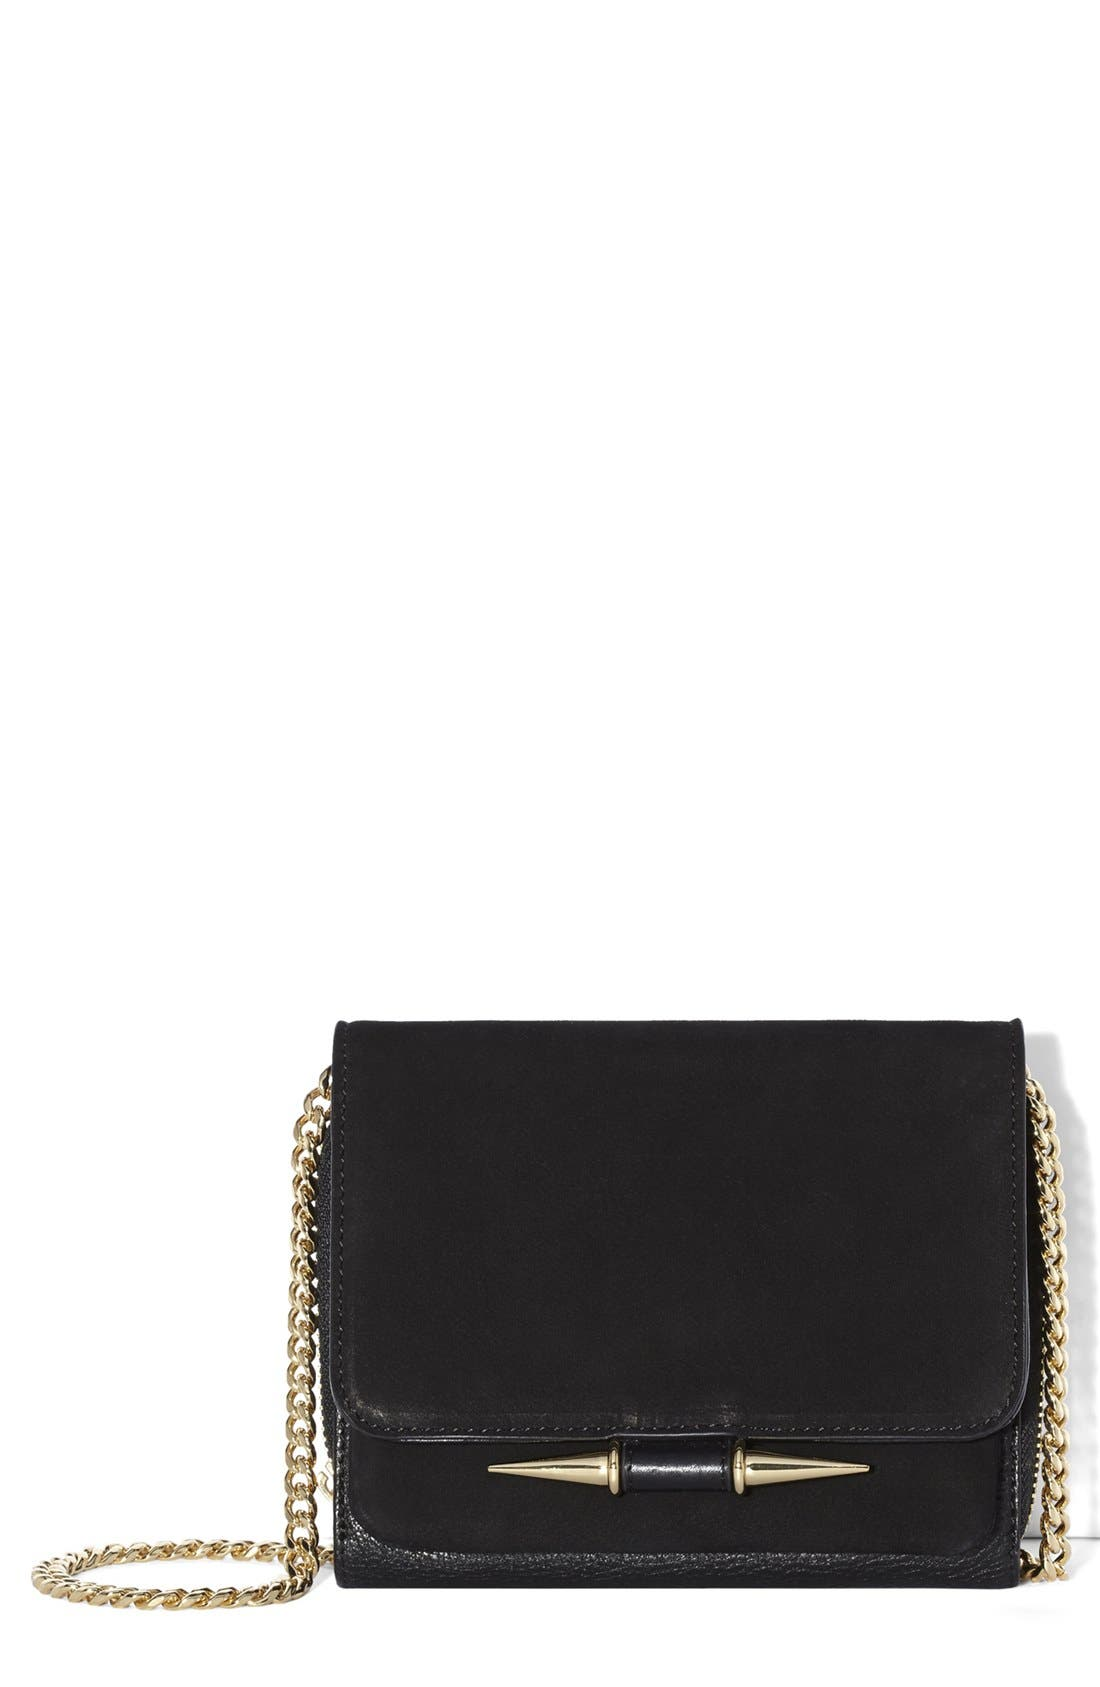 Alternate Image 1 Selected - Vince Camuto 'Gia' Crossbody Bag